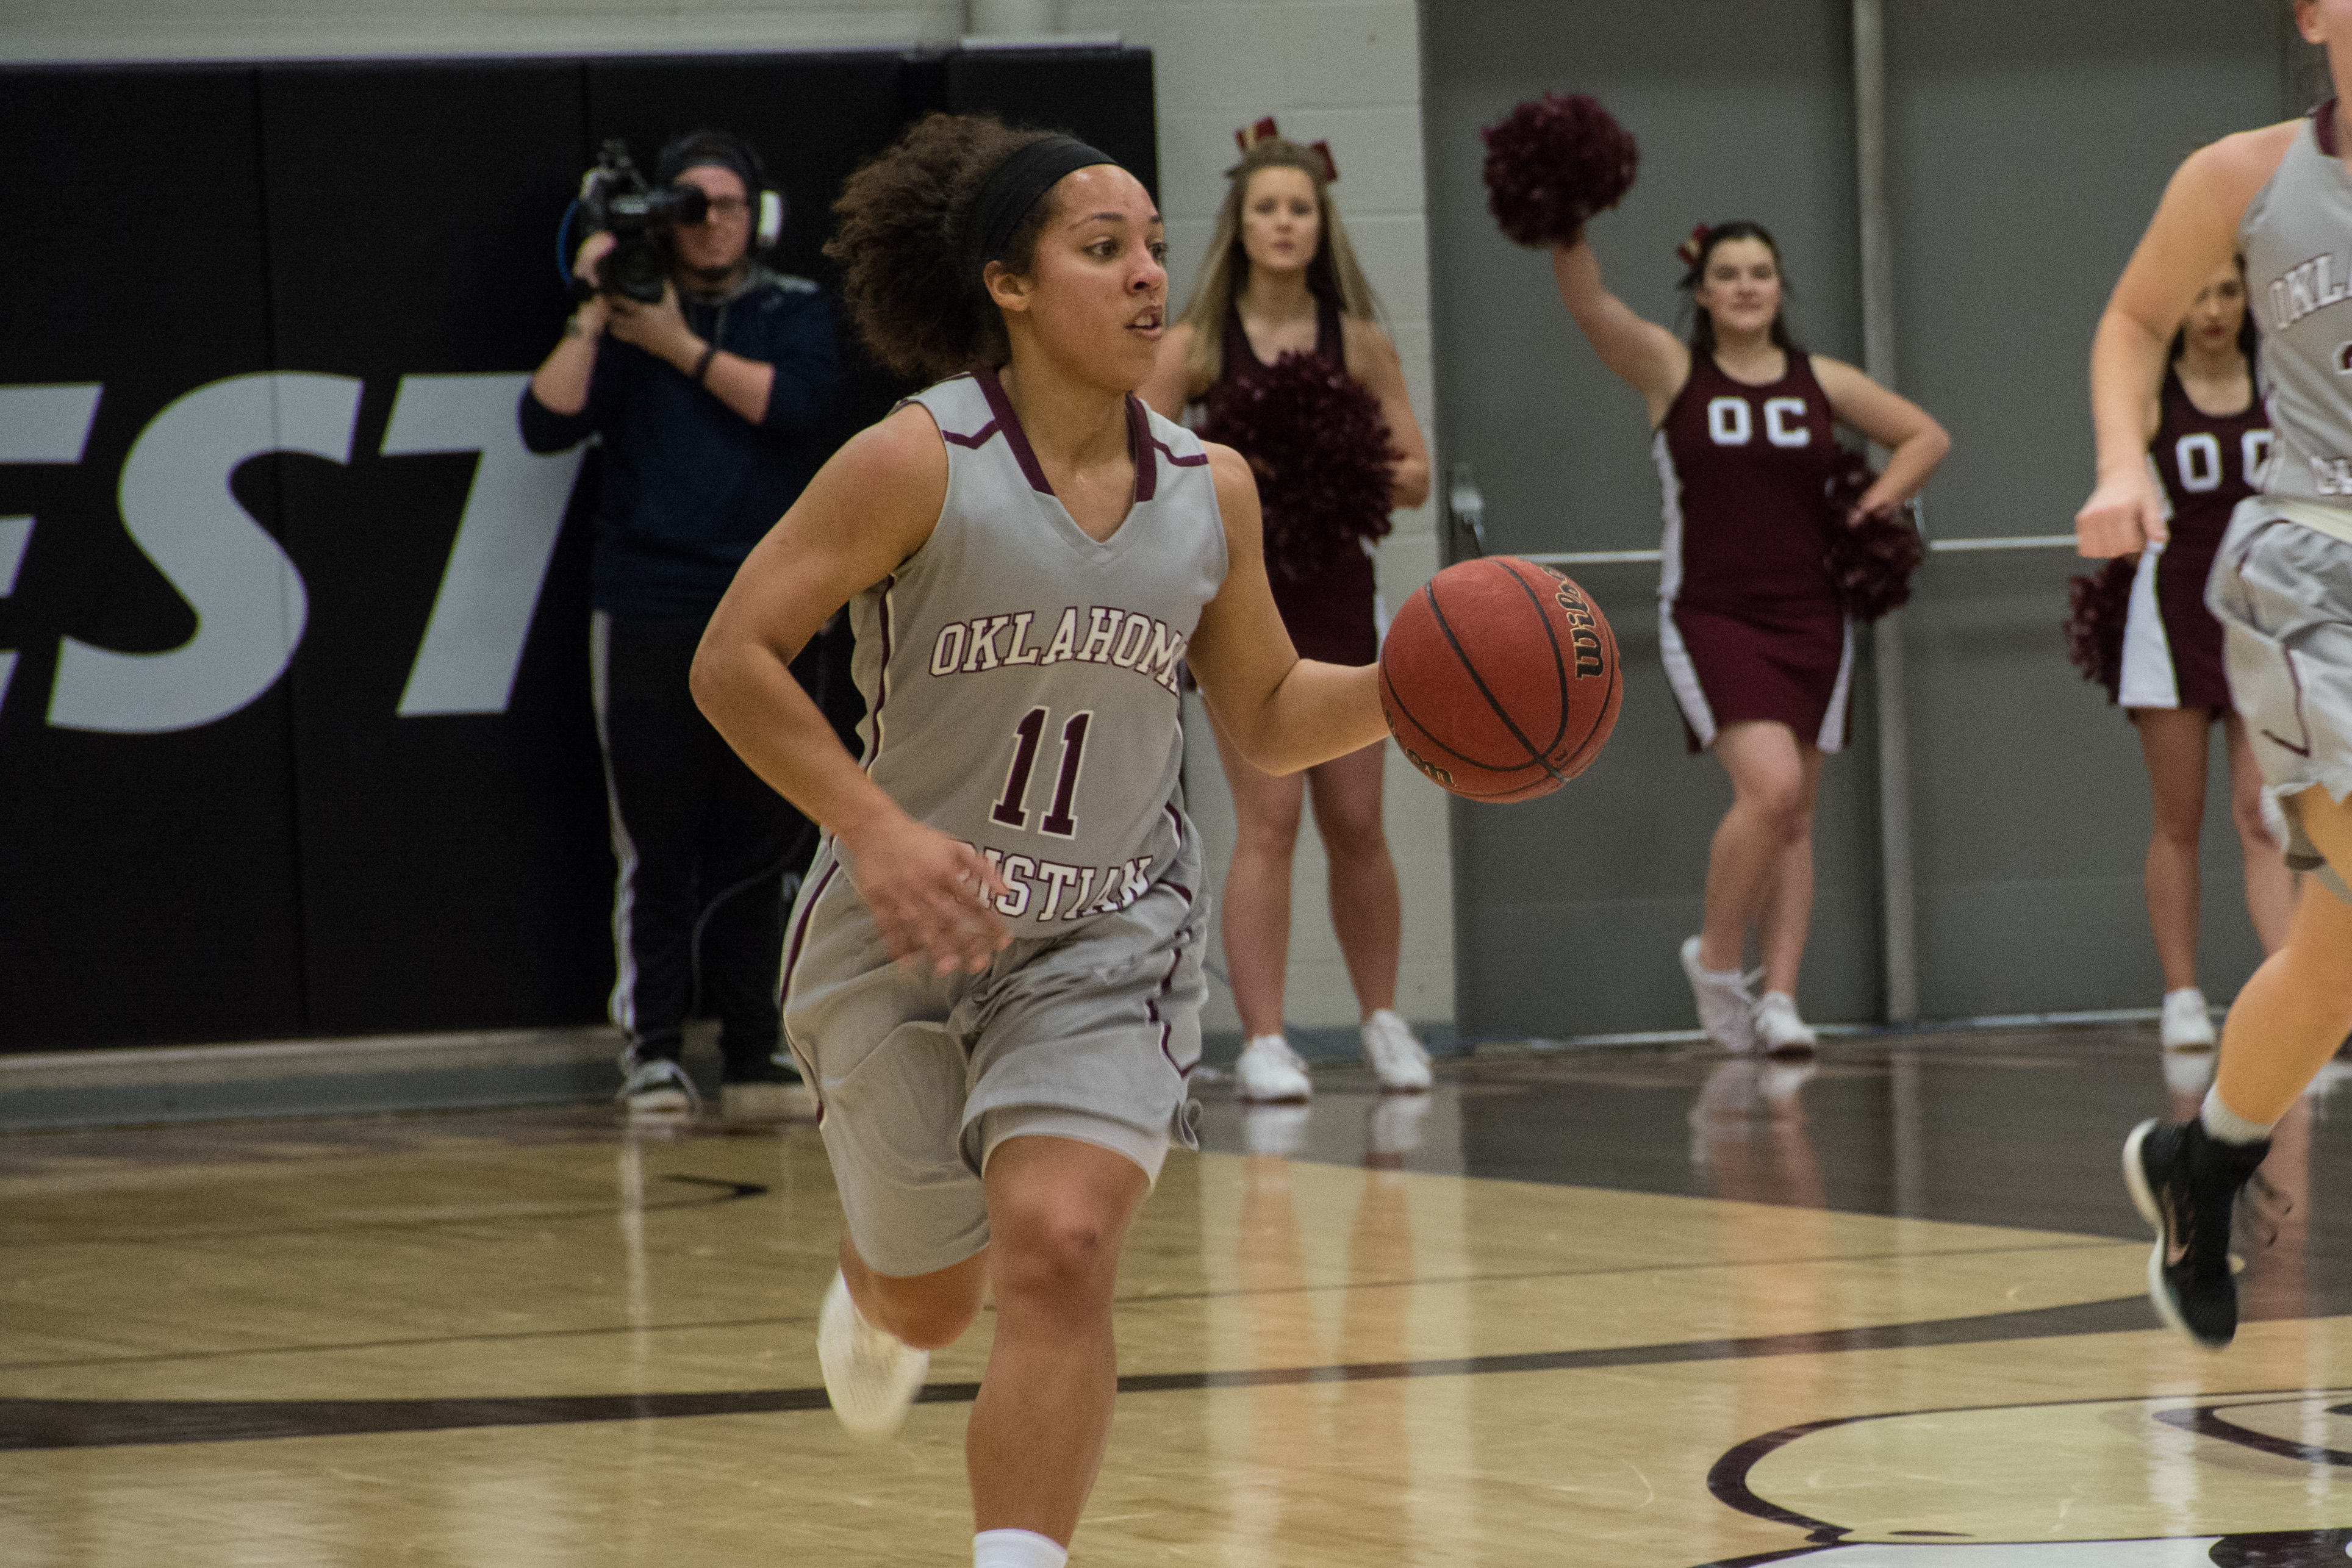 Senior Sydney Hill records 22 points against Texas-Permian Basin on Feb. 27. Photo by Abby Bellow.